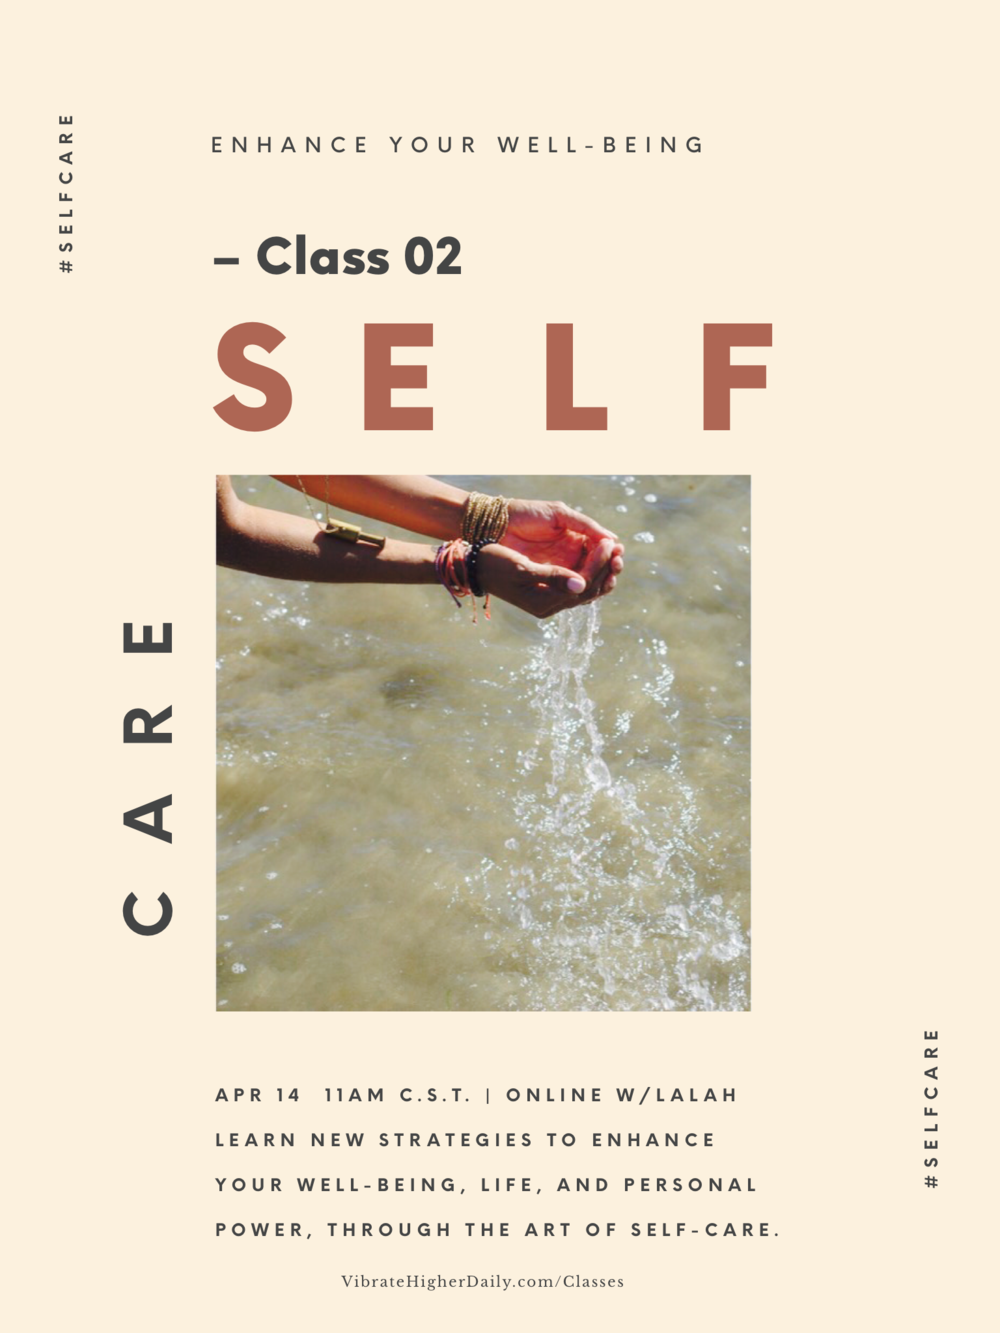 Self-Care - $15Learn new strategies to enhance your well-being, life and personal power through the art of Self-Care.People who give, give, give, and do, do, do, this class is for you.If one of your current goals is to take your power back, this class is for you.If your'e a parent, this class is for you. If you're a creative, teacher, or person of influence,on any level, this class is for you.